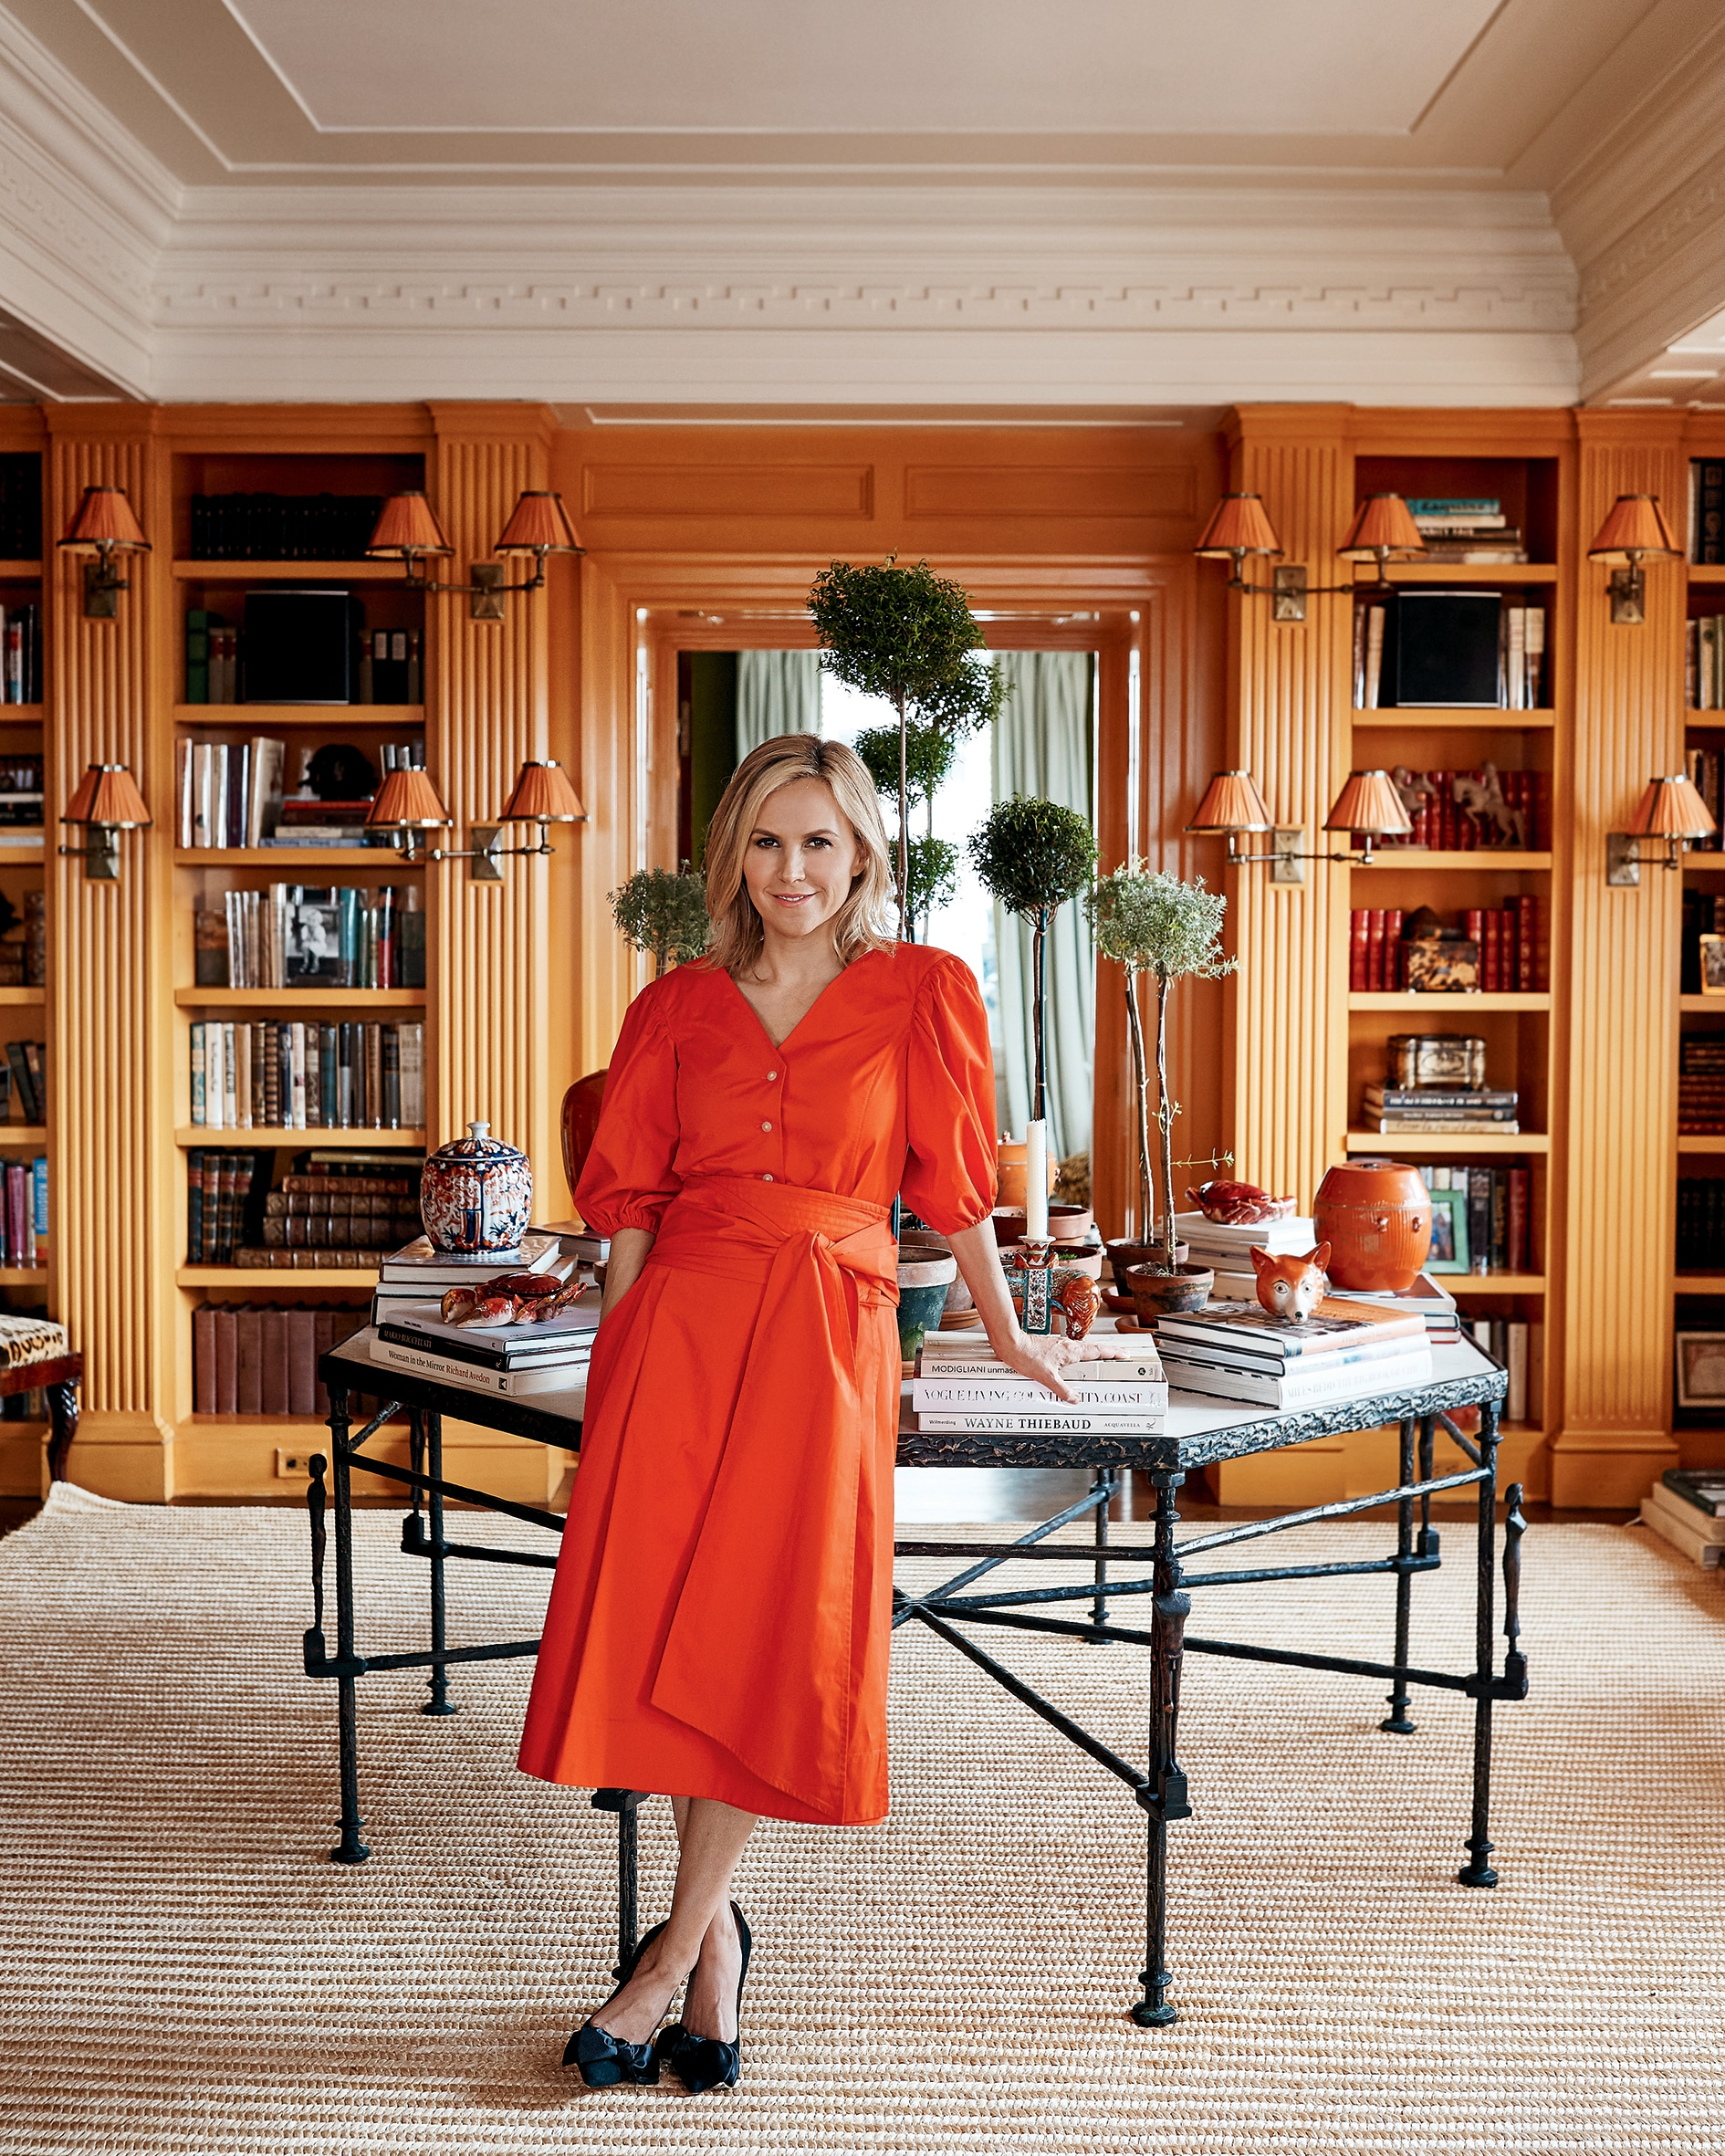 La stilista Tory Burch nella sua casa di New York.